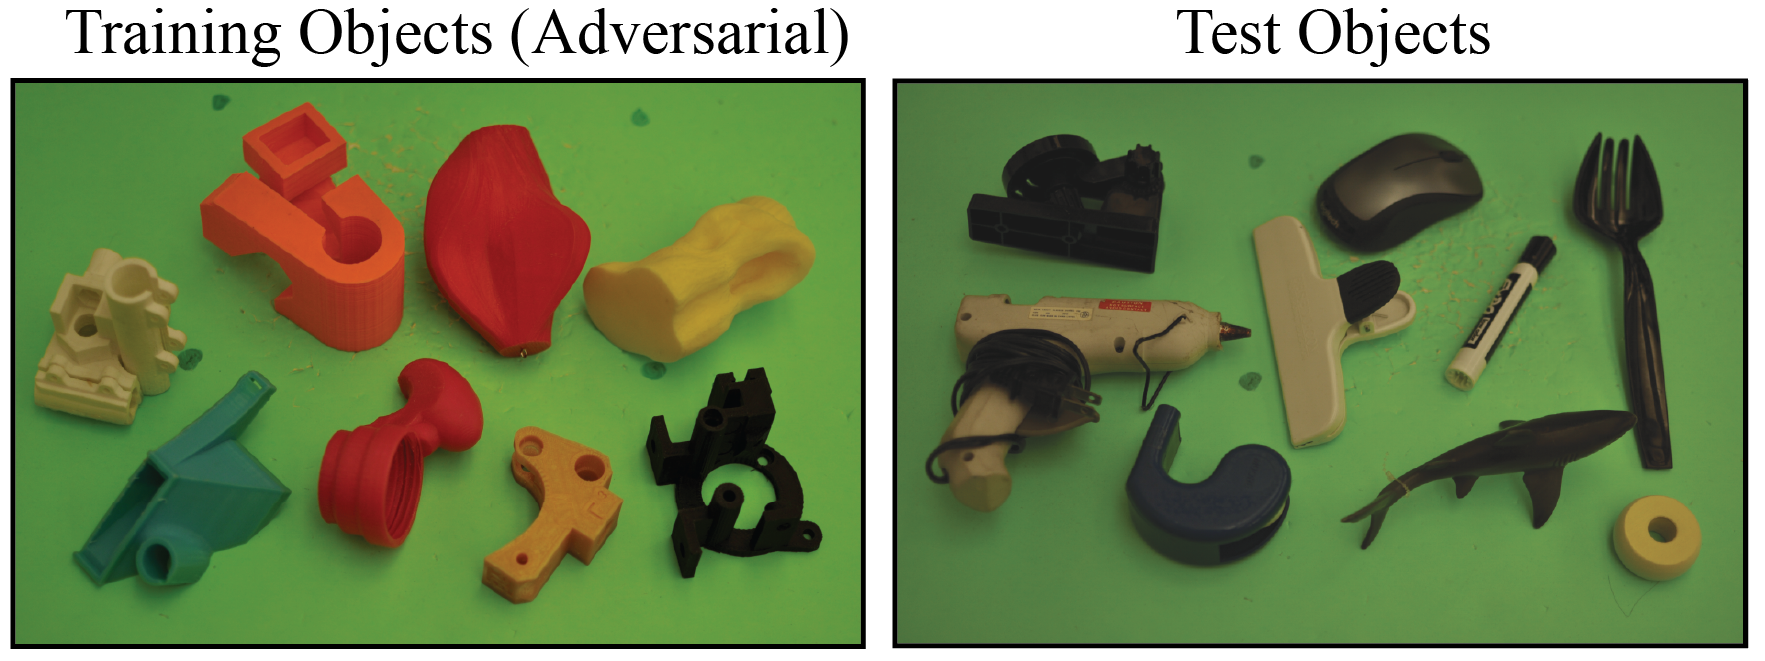 (Left) Training set of 8 objects with adversarial geometric features such as smooth curved surfaces and narrow passageways for grasping on known objects. (Right) Set of 10 household and office objects not seen during training. The dataset was selected to test performance on challenging objects of varying material, geometry, and surface reflectance properties.